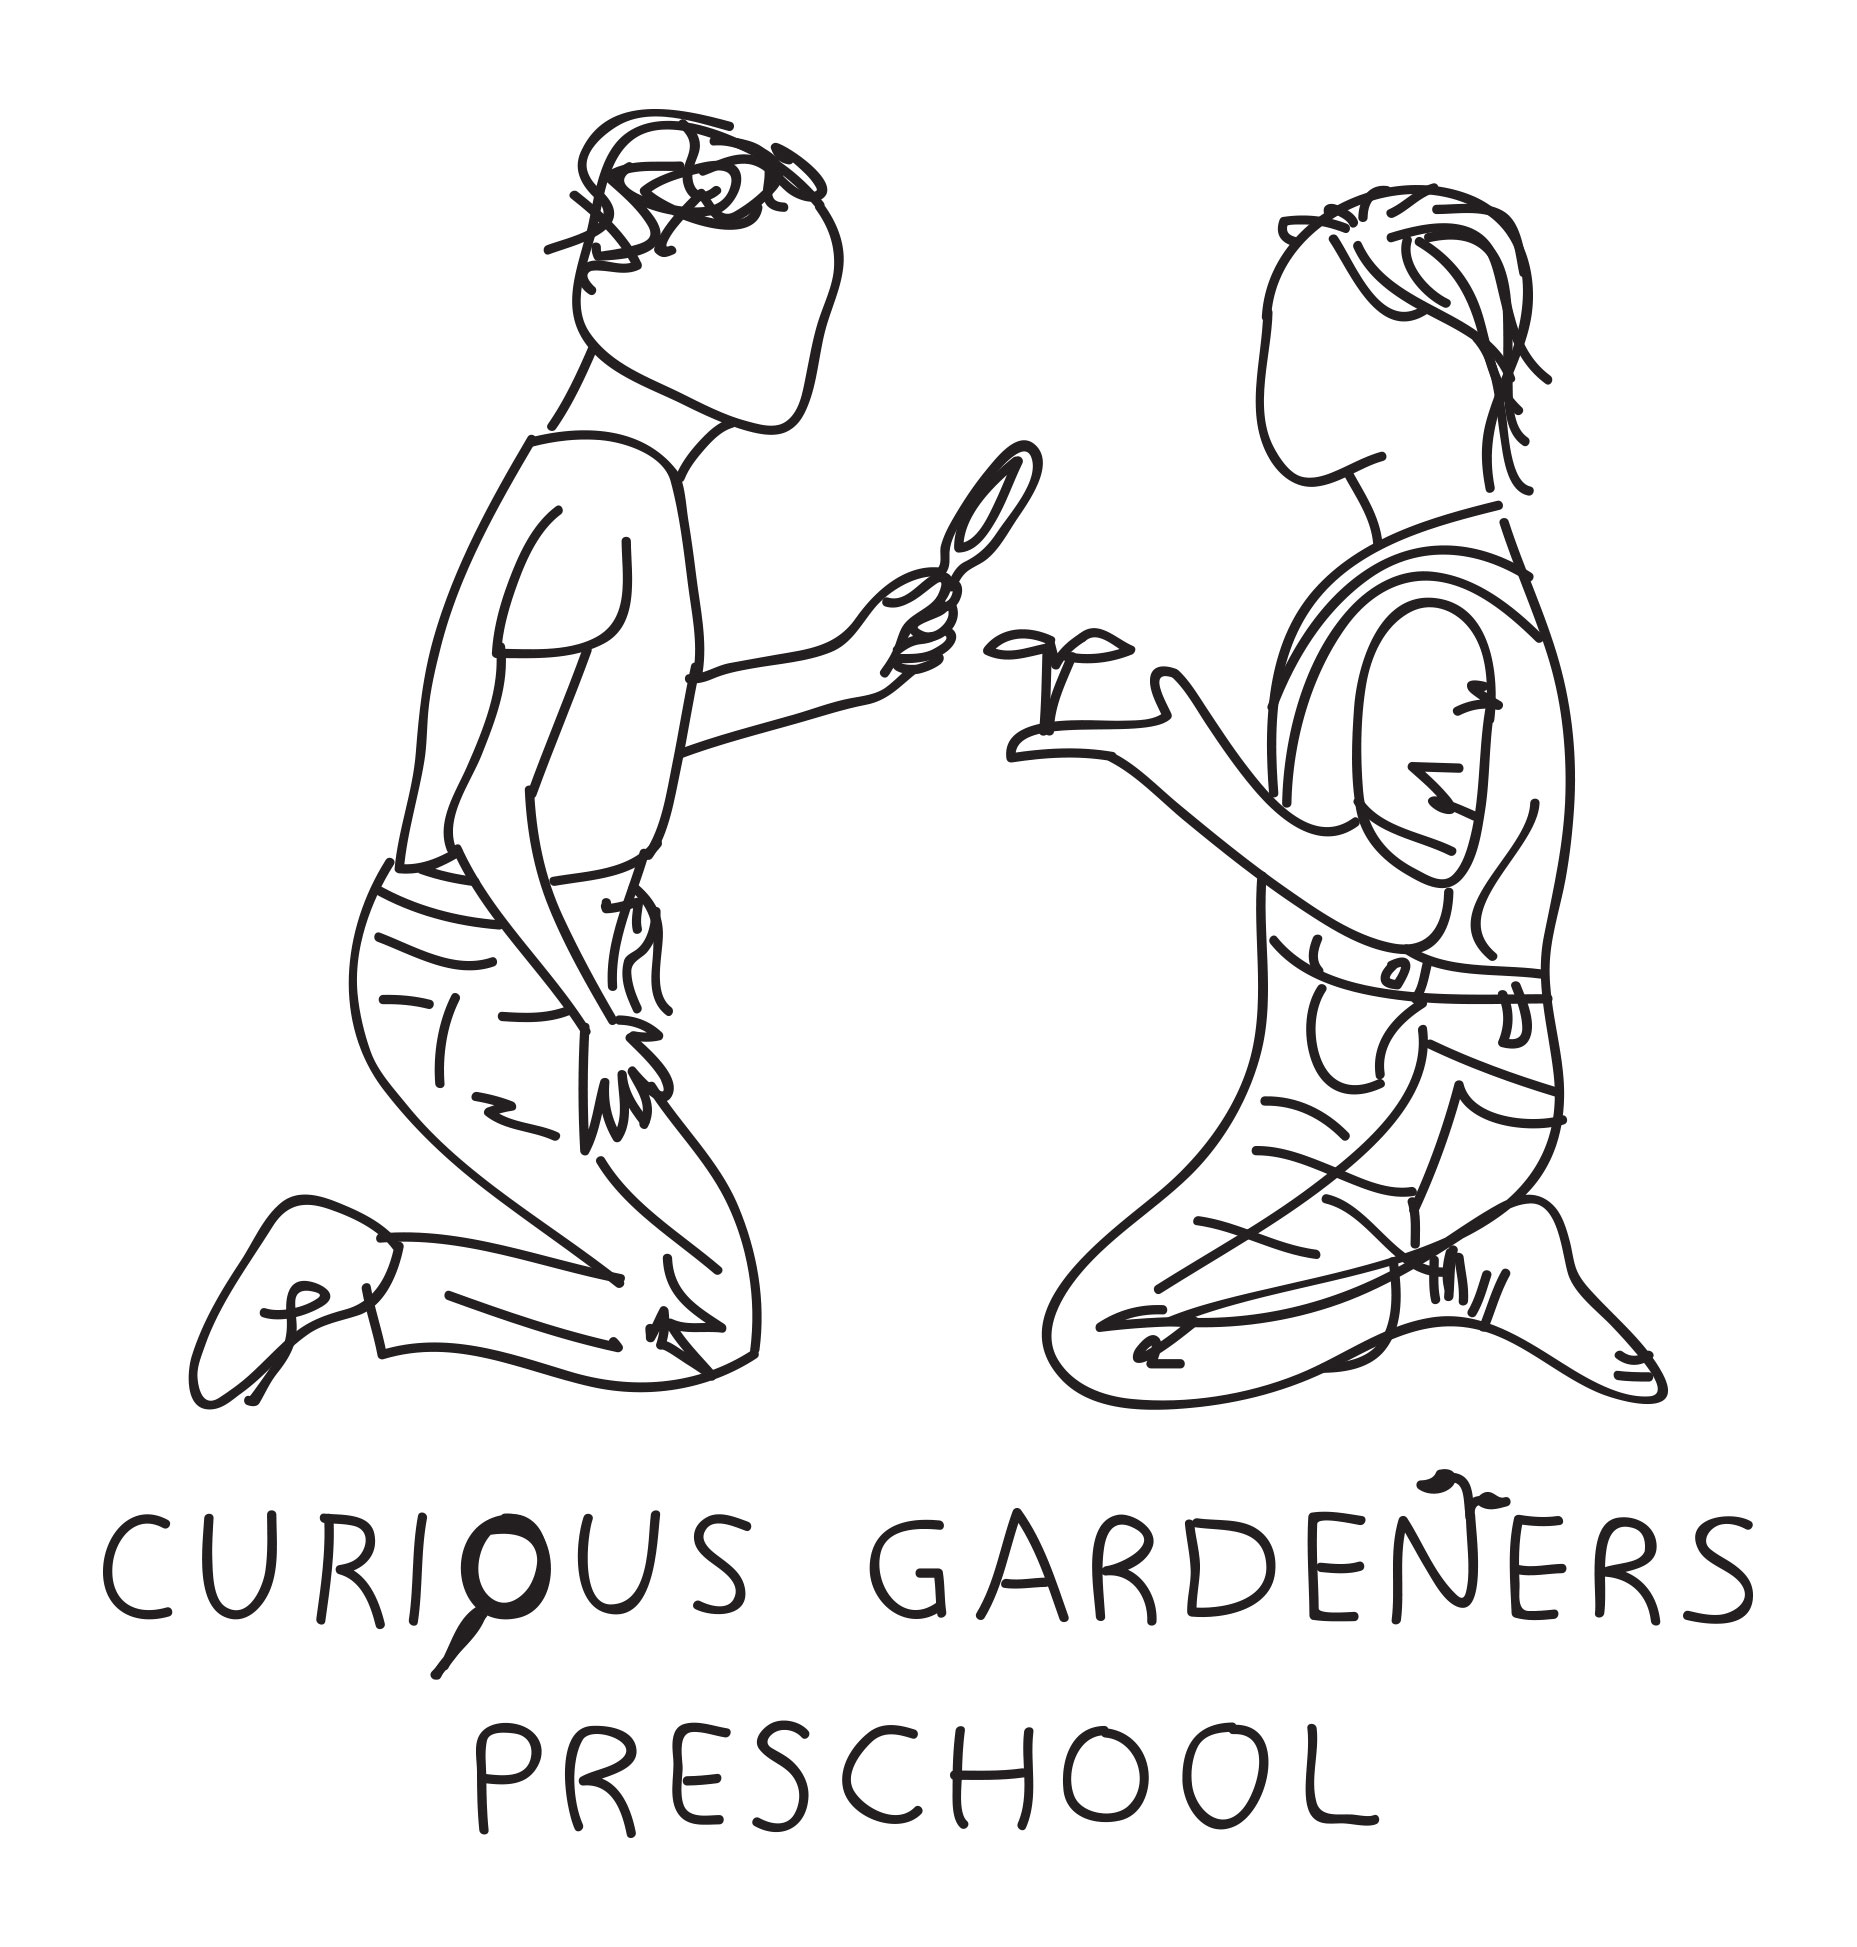 curious-gardeners-line-drawing.jpg